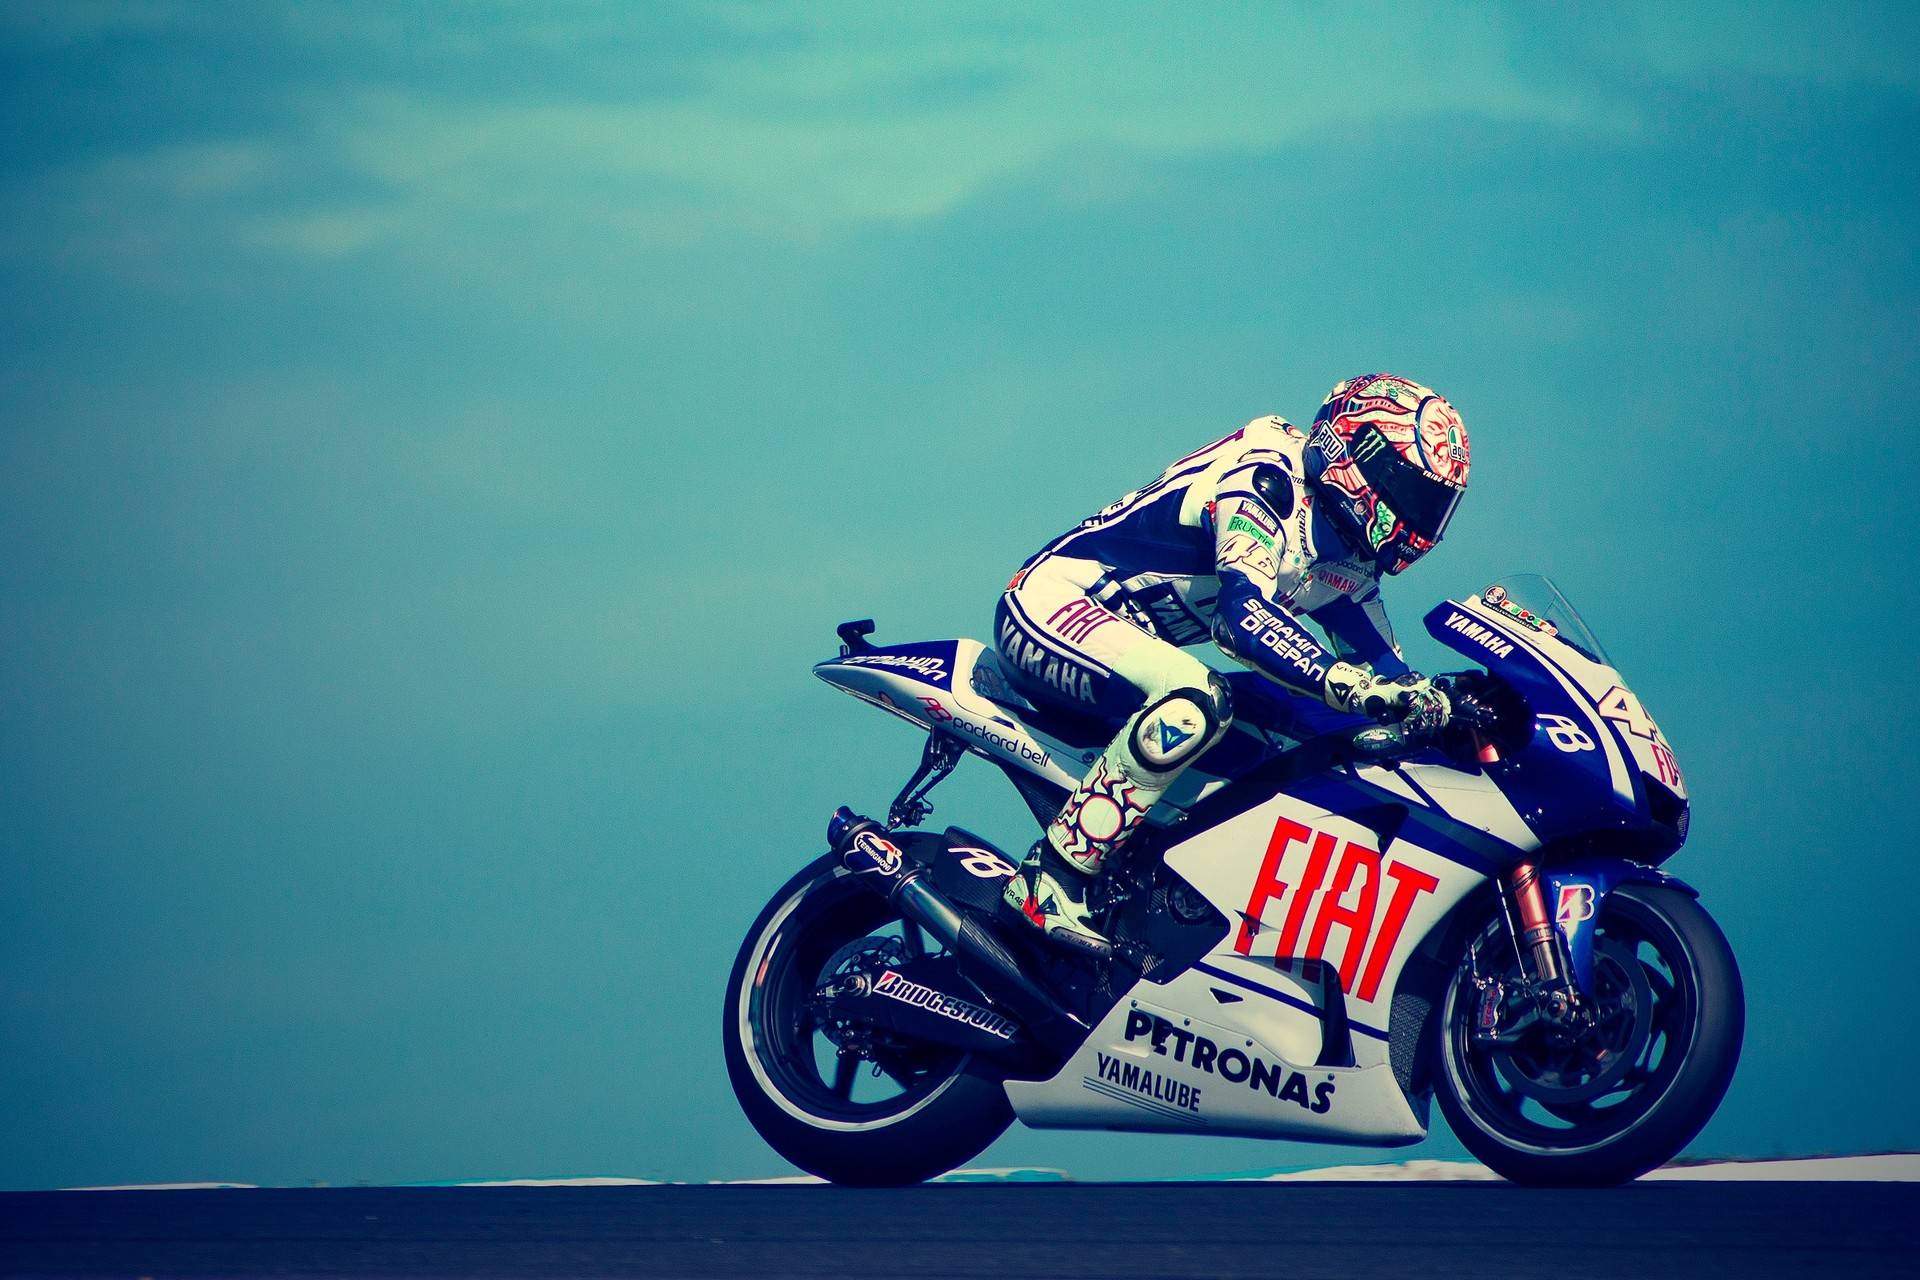 Valentino rossi ogq backgrounds hd voltagebd Images